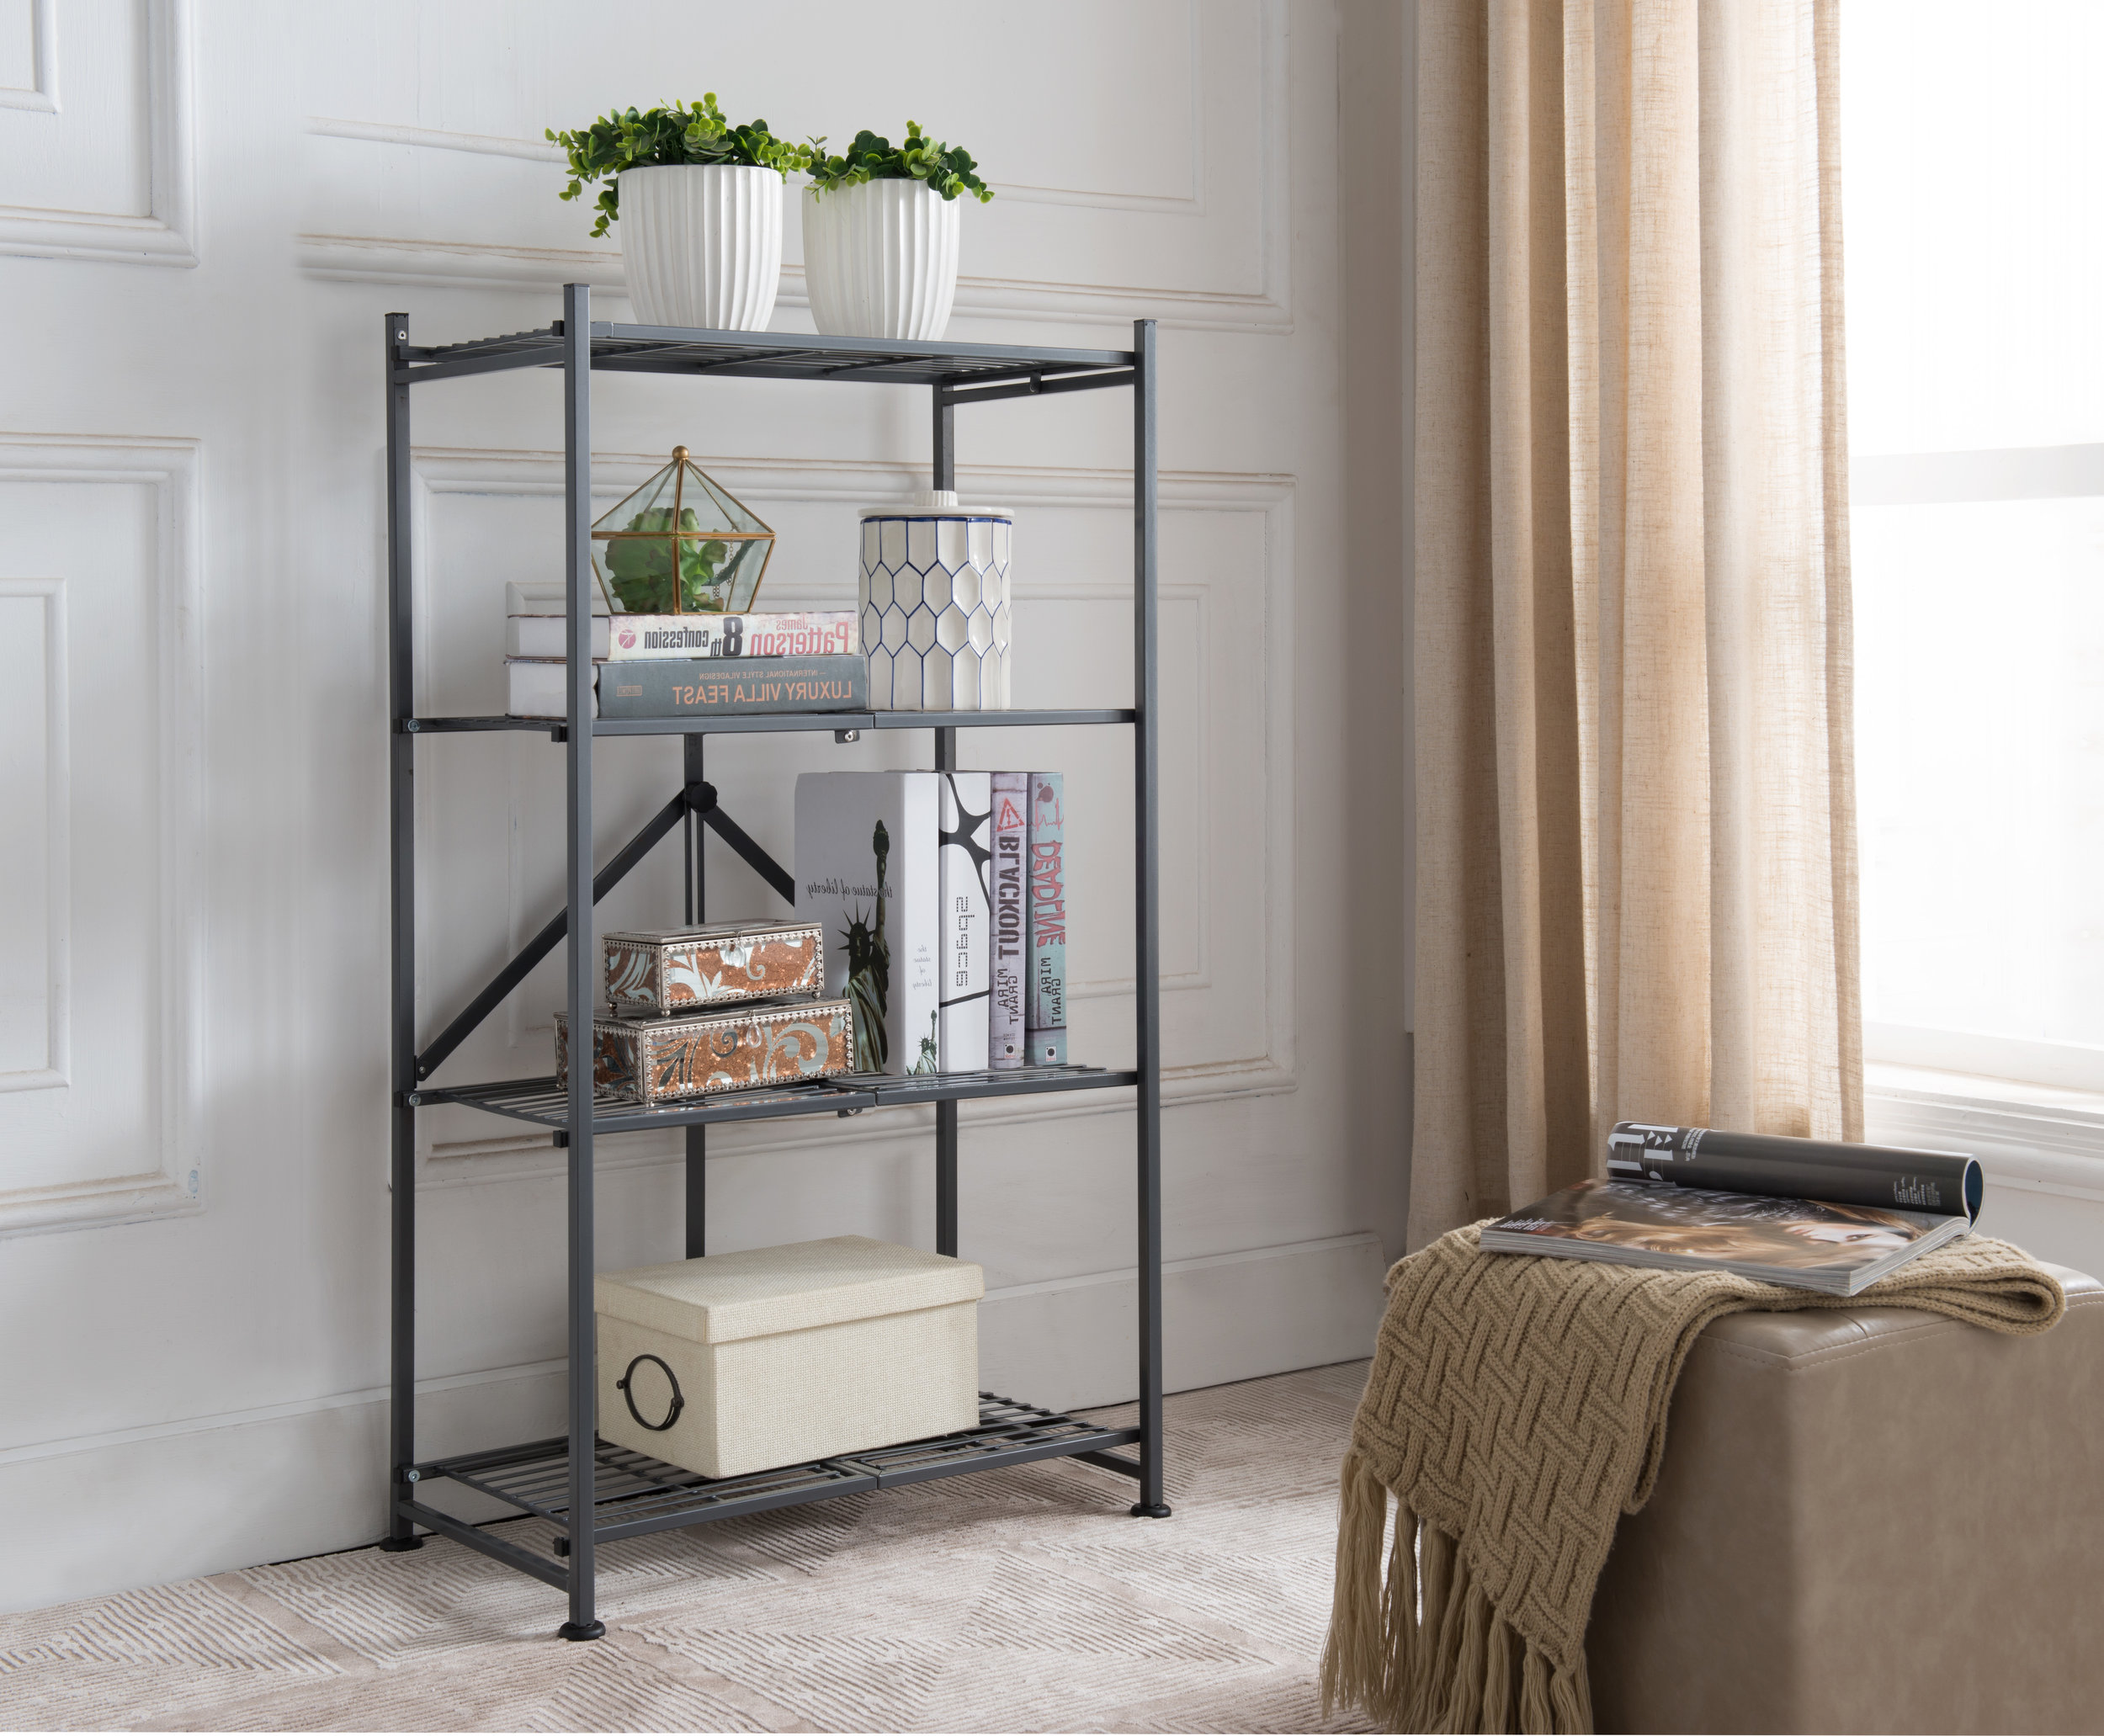 Inspiration: Gray metal shelving to maximize vertical storage space.